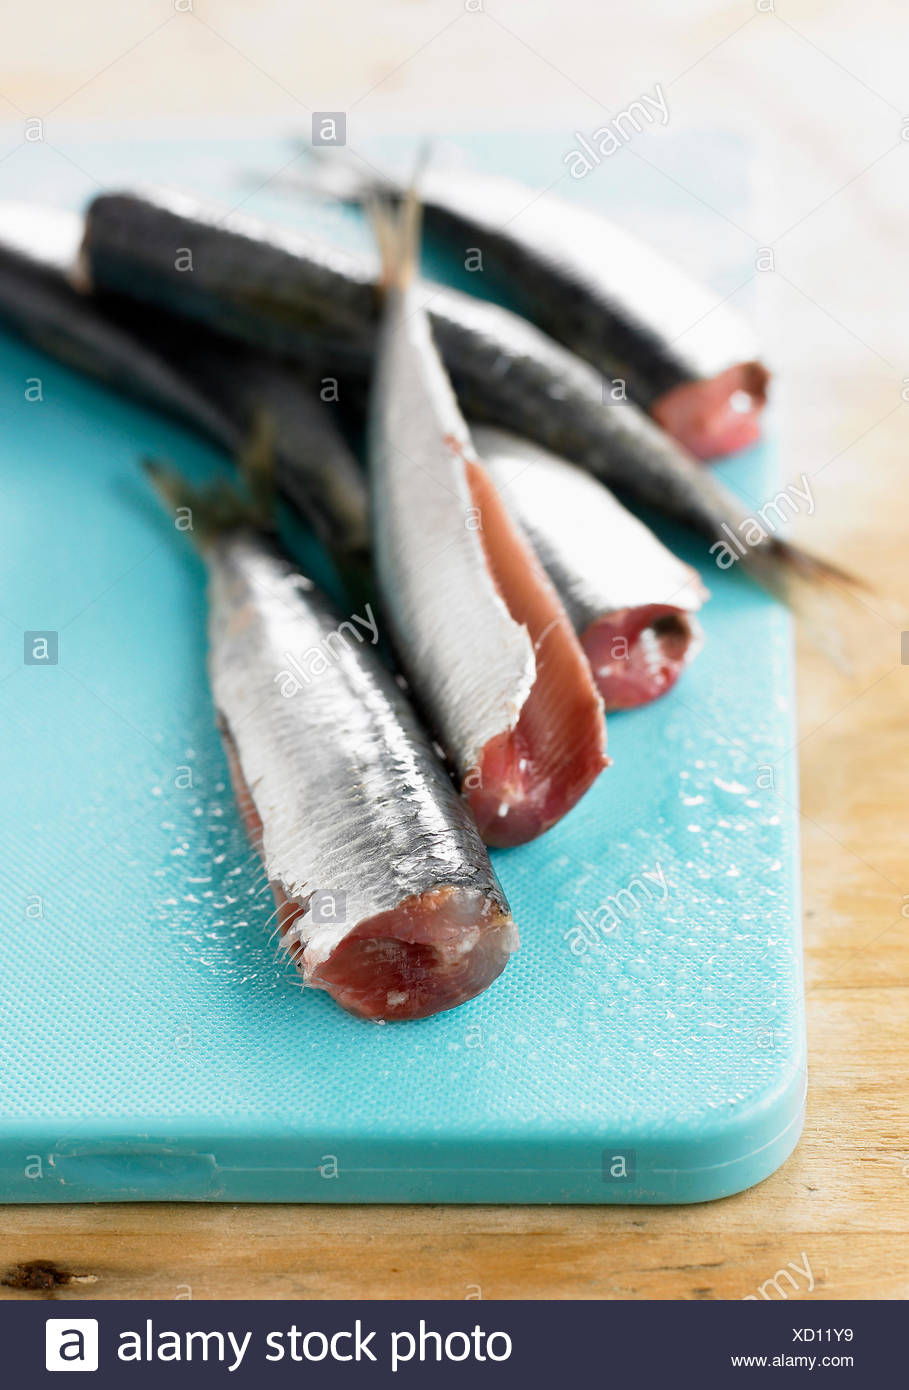 Raw gutted sardines - Stock Image